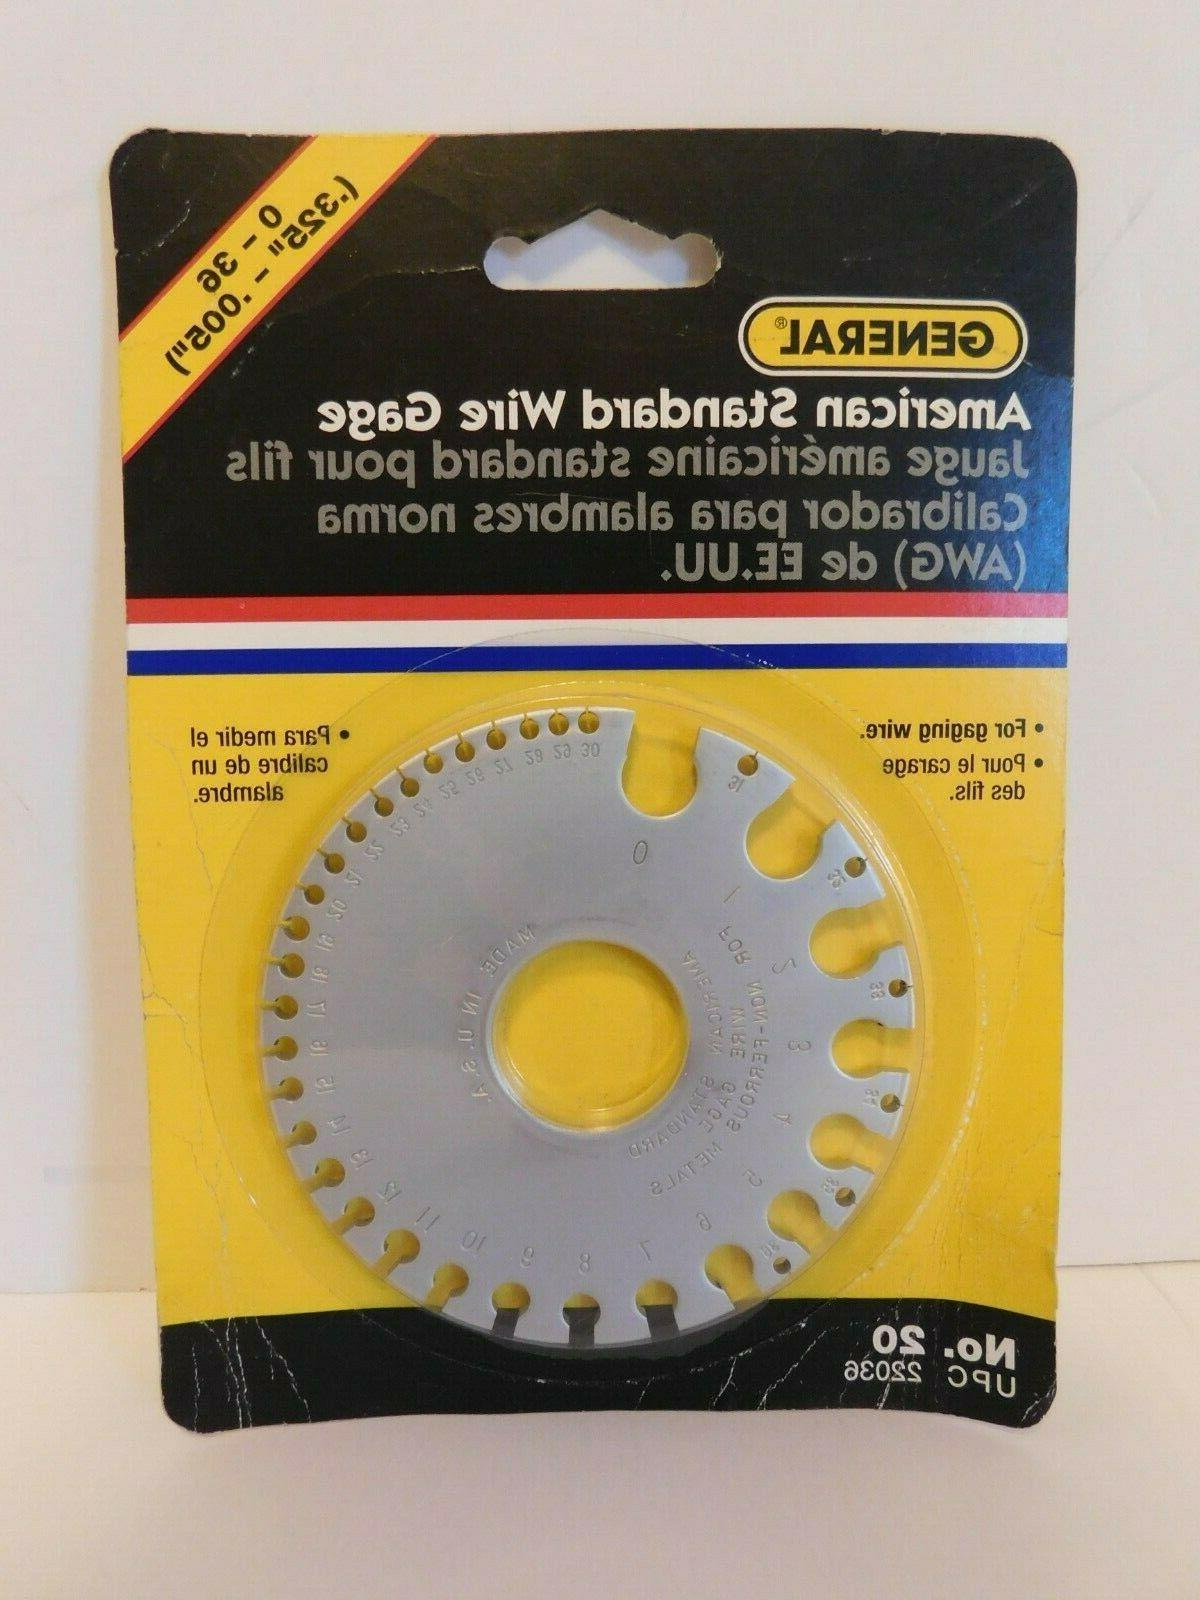 0 to 36 american standard wire gage